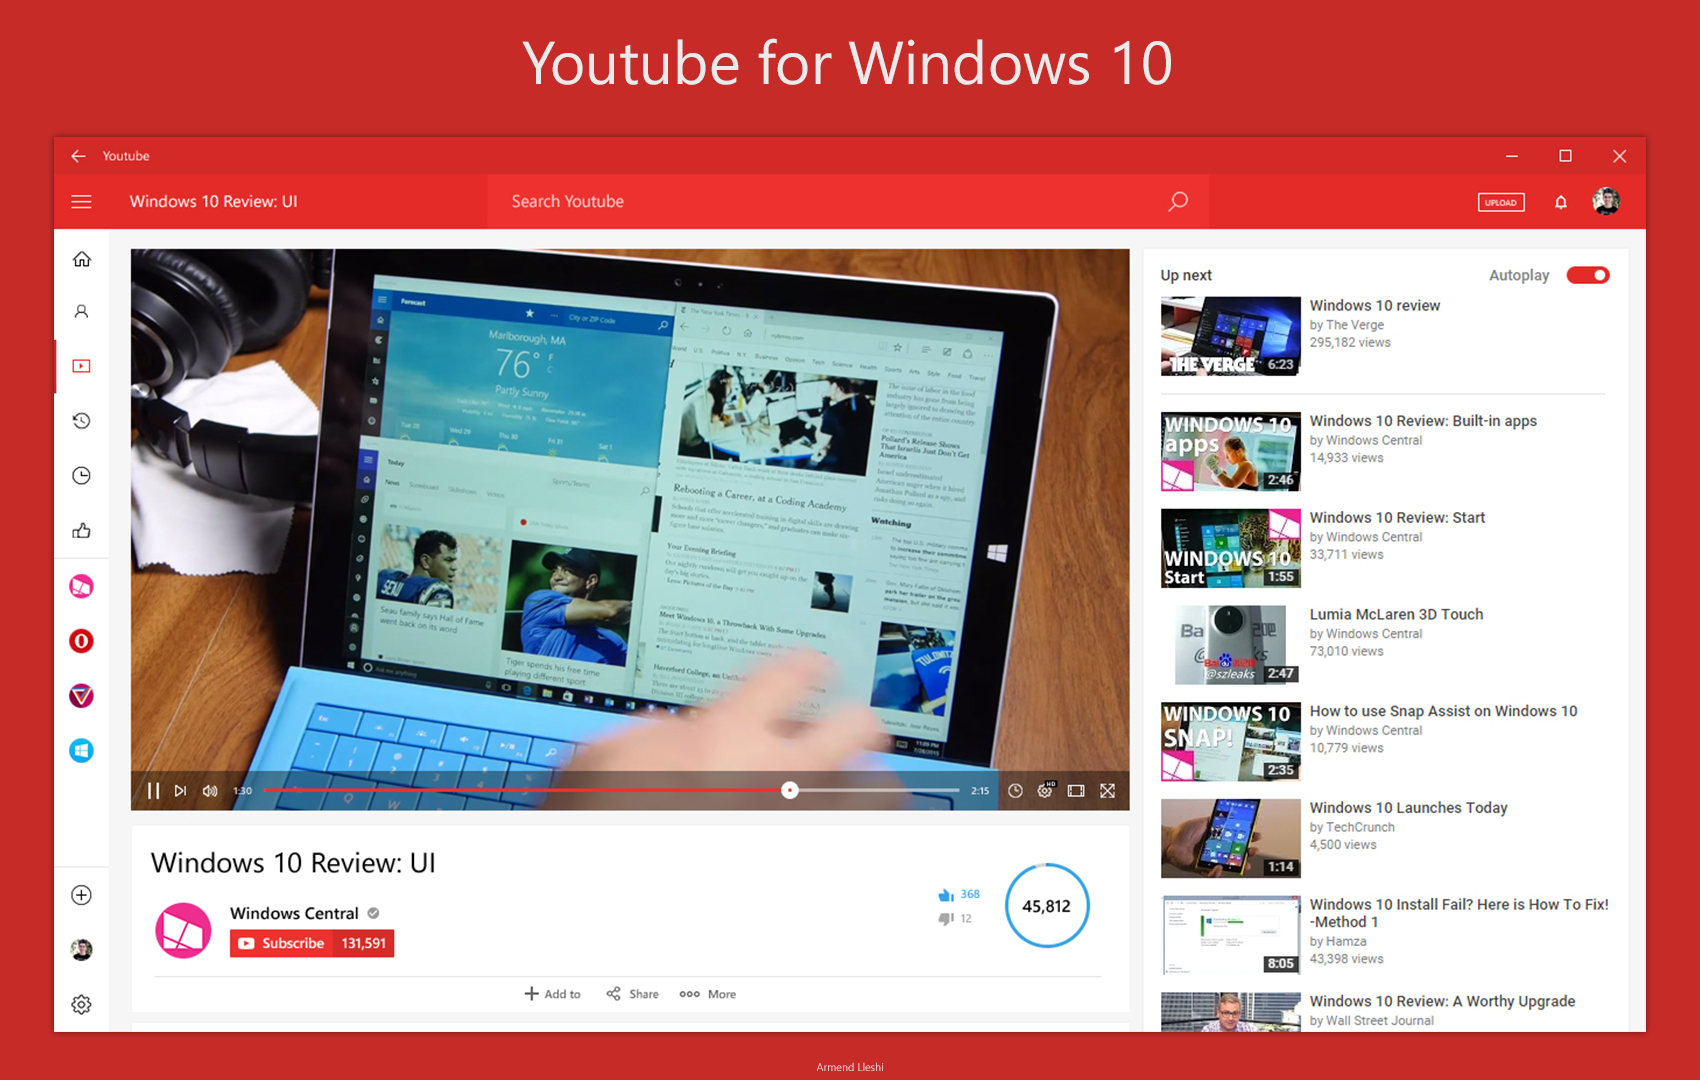 Youtube App For Windows 10 Light Theme Concept By Armend07 On Deviantart